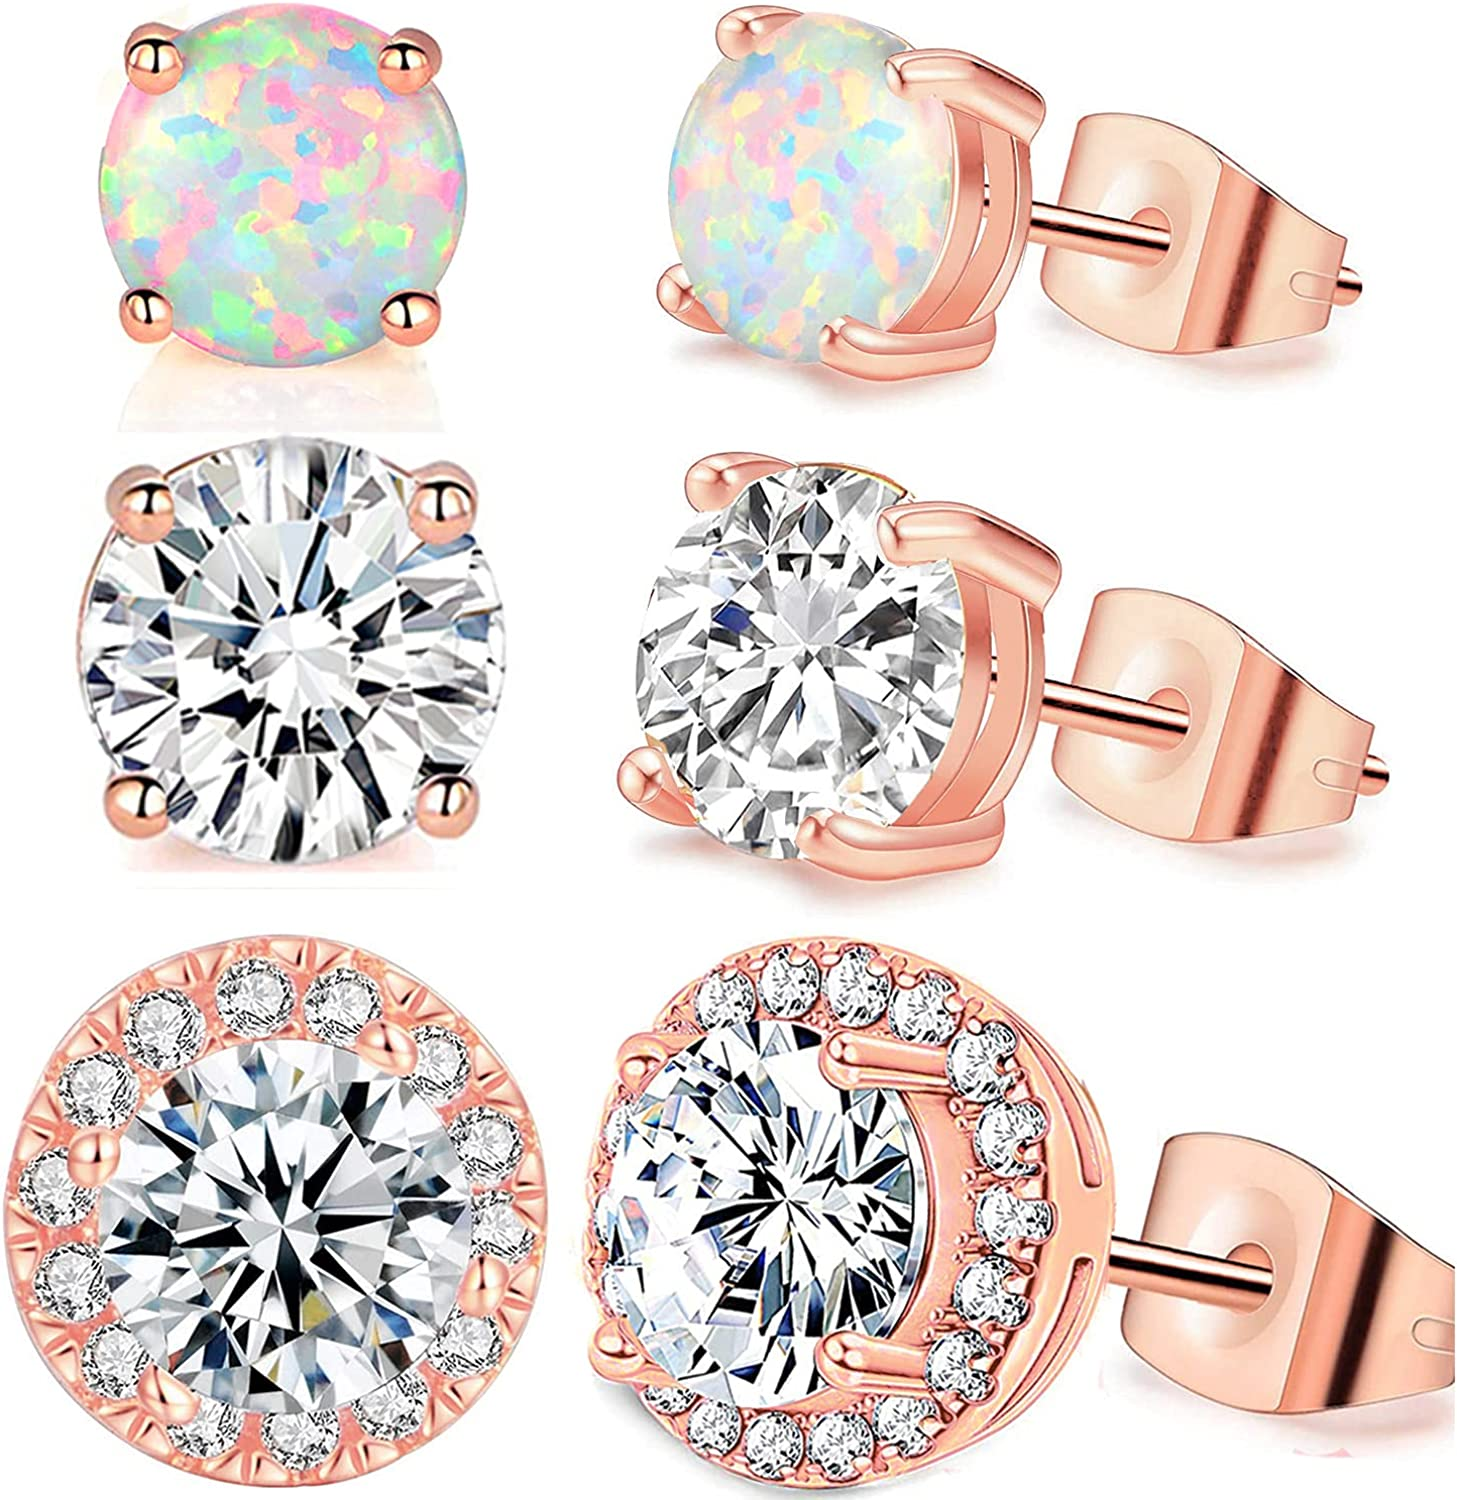 Gorgeous Pack of 7 Phoenix Mall CZ Halo White Opal Hypoaller Stud Gold Plated Earrings